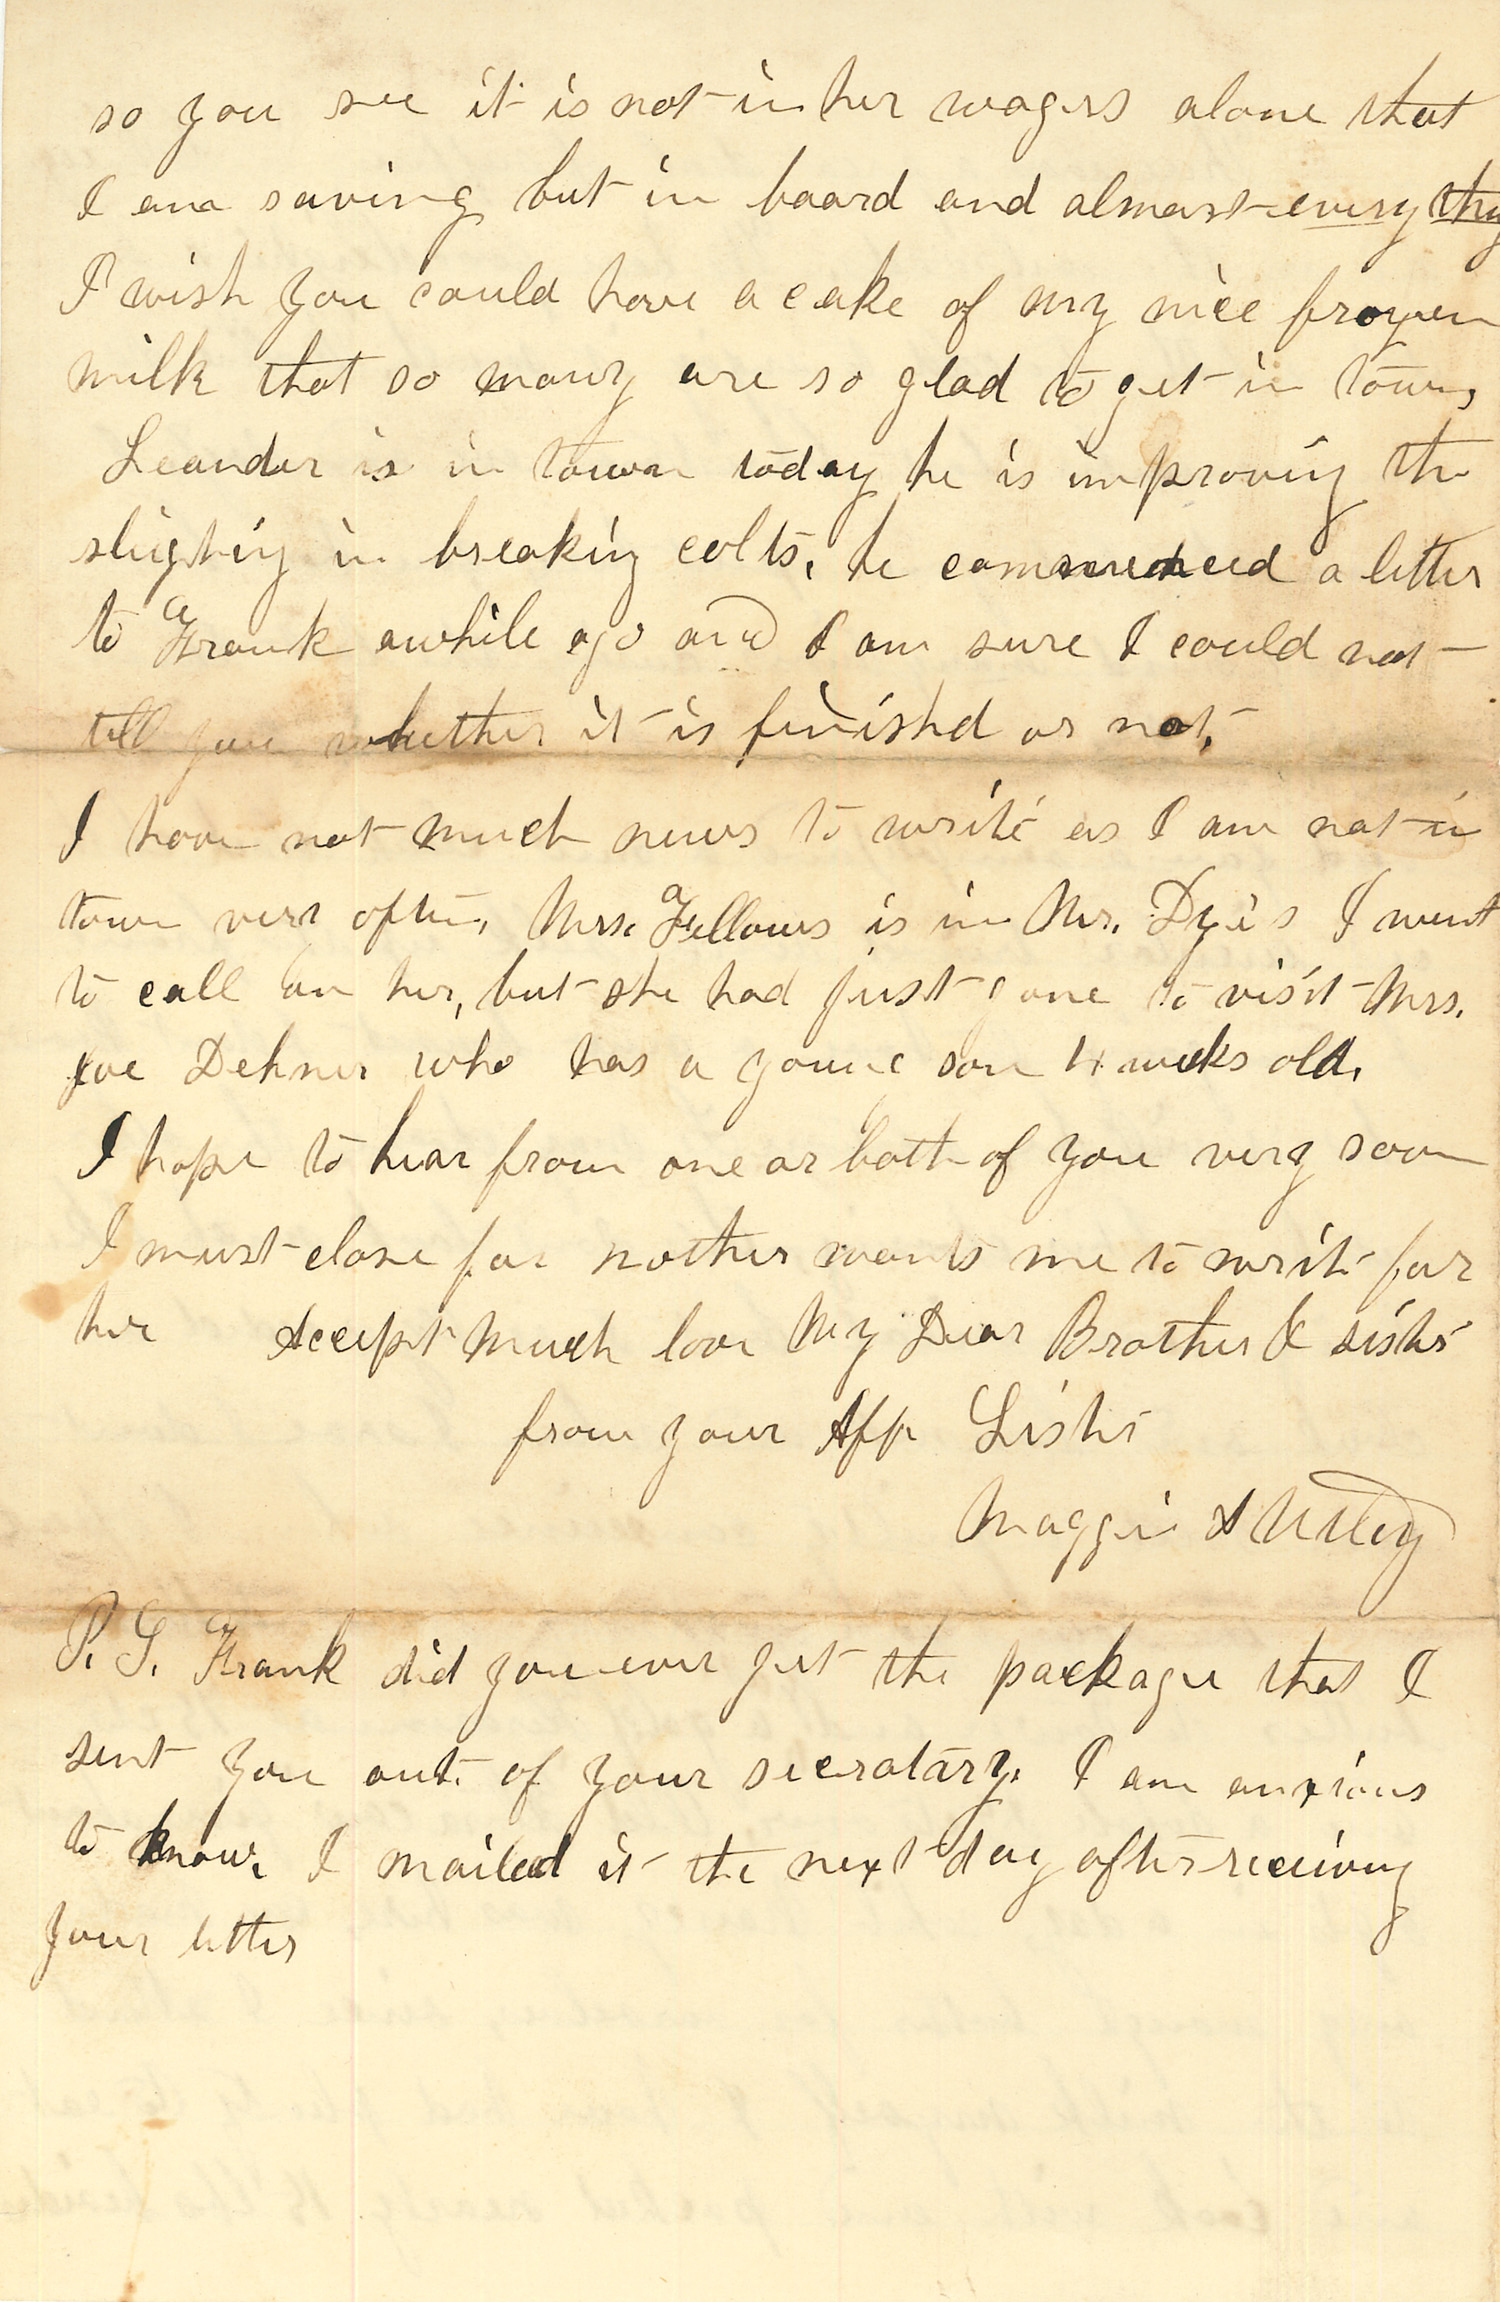 Joseph Culver Letter, January 9, 1864, Page 4